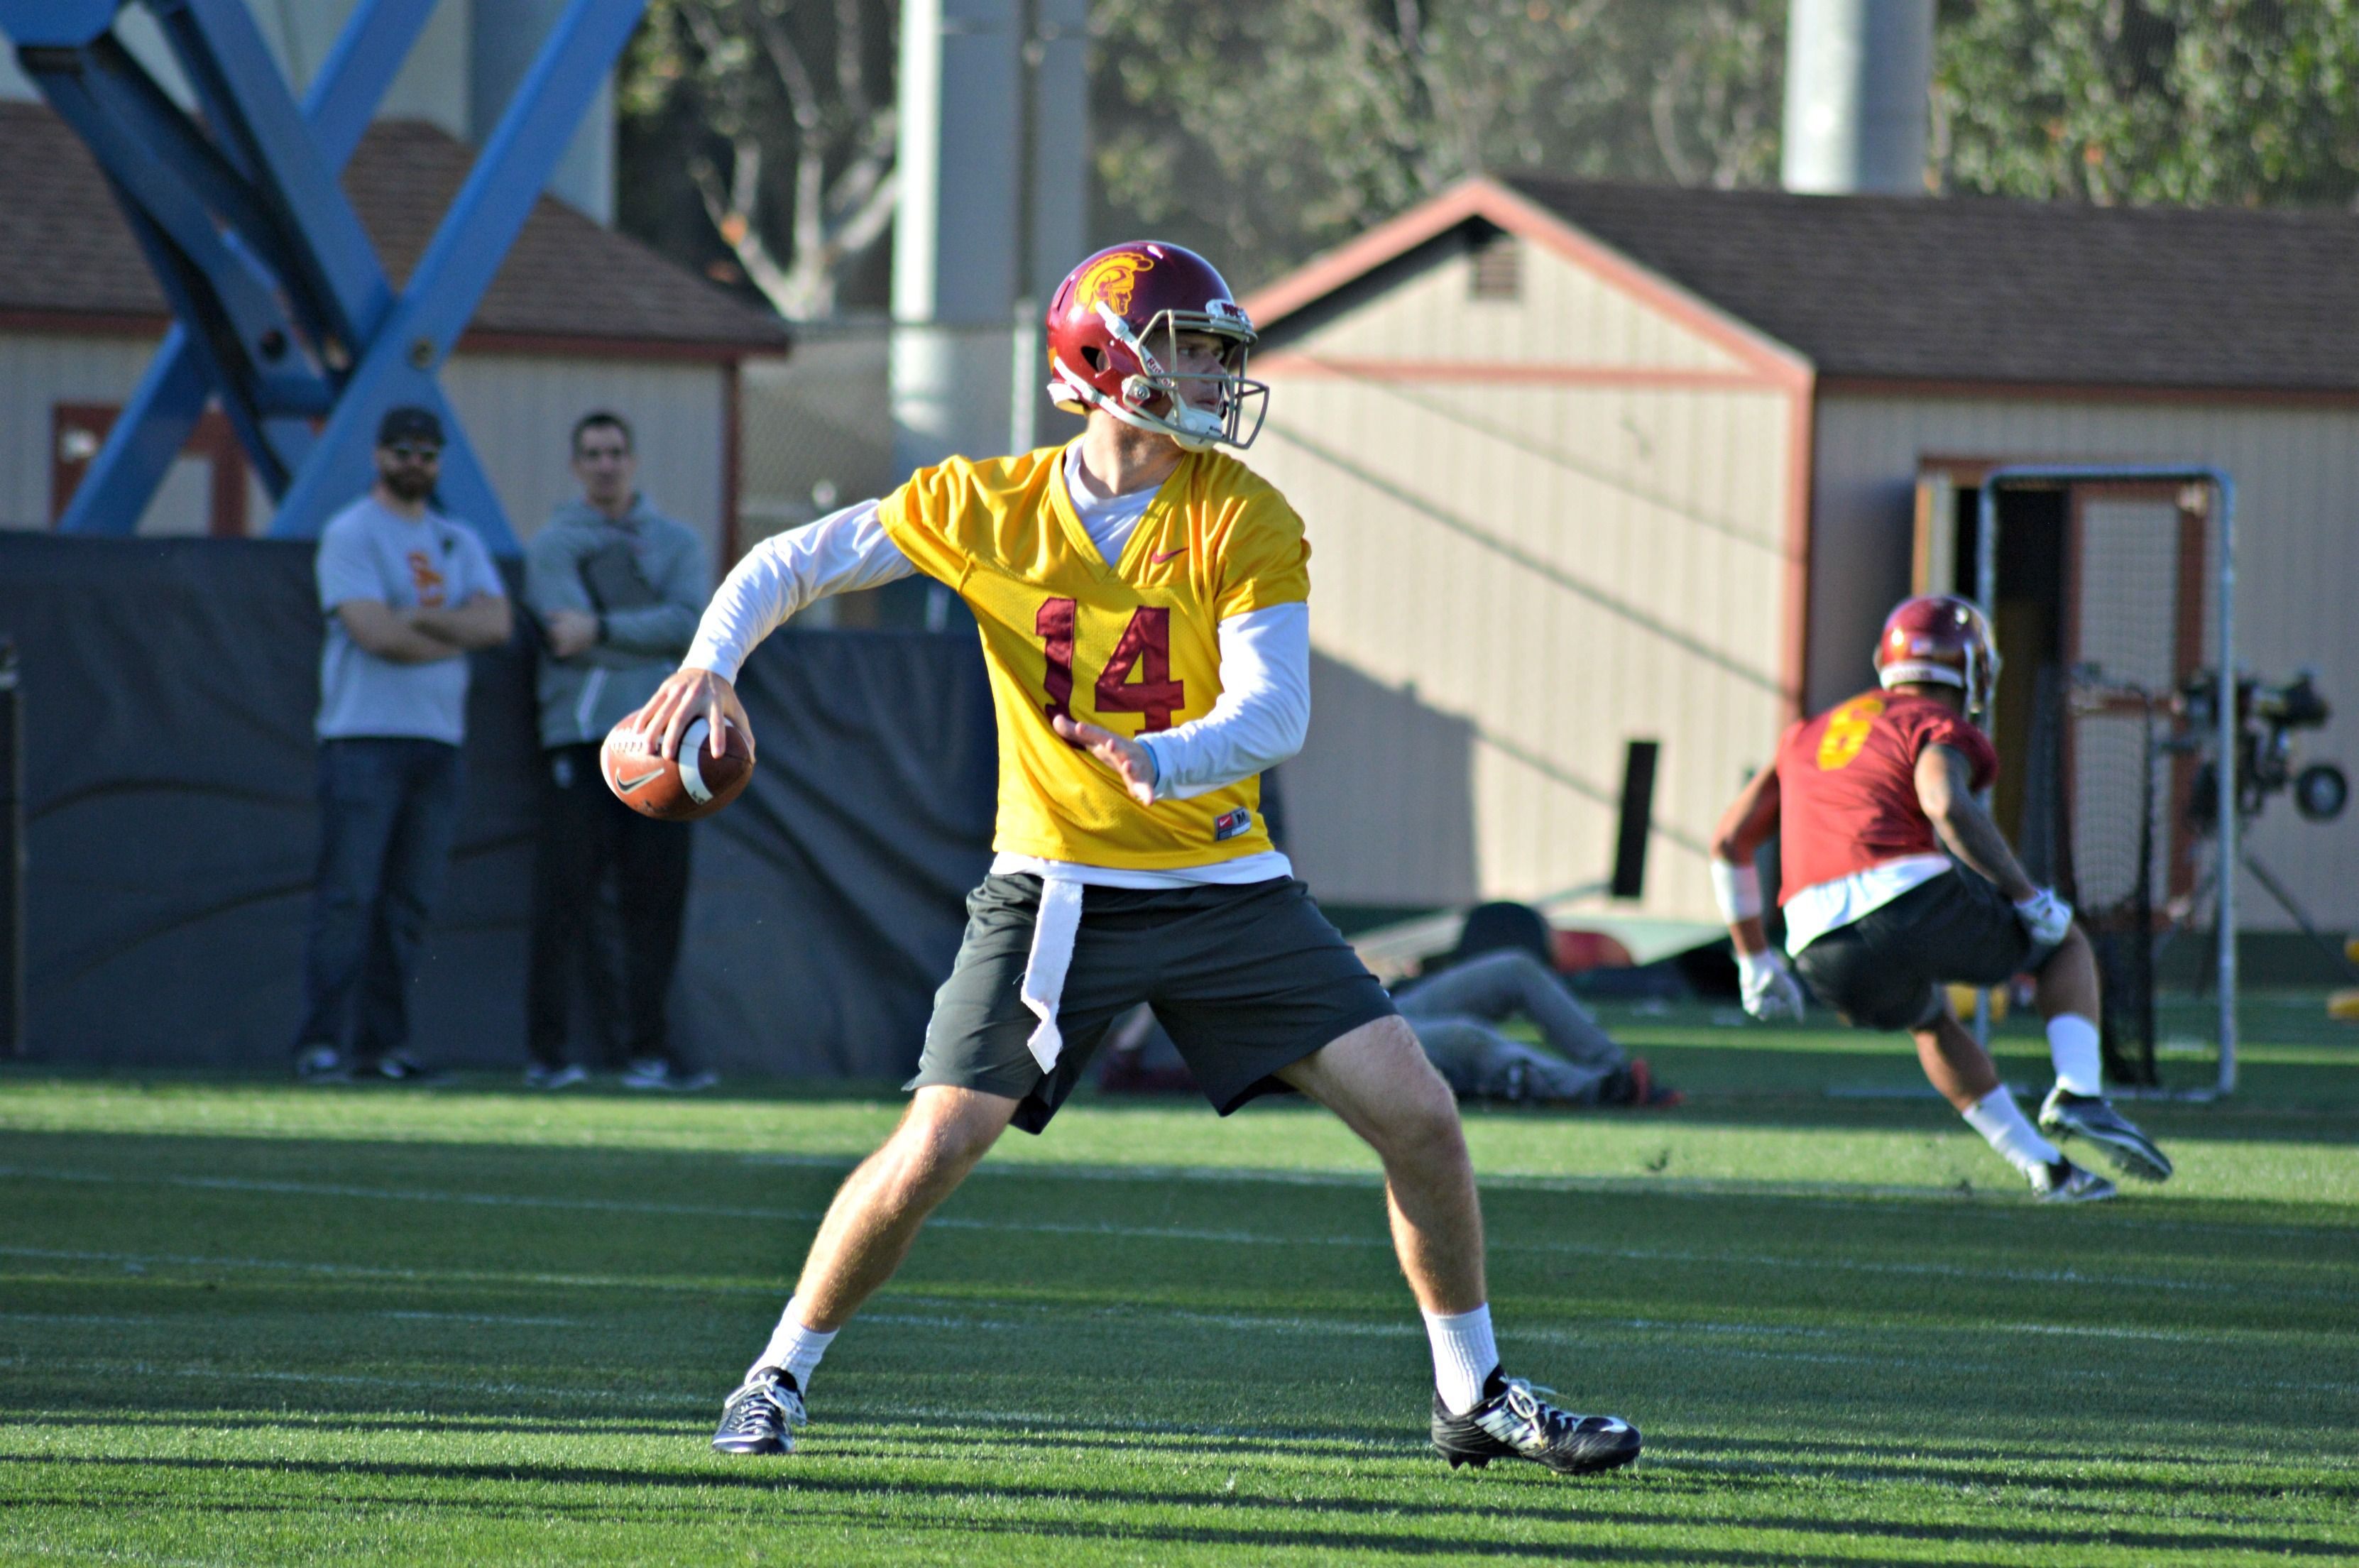 Saturday's best moments were led by USC's Jake Olson, blind long snapper